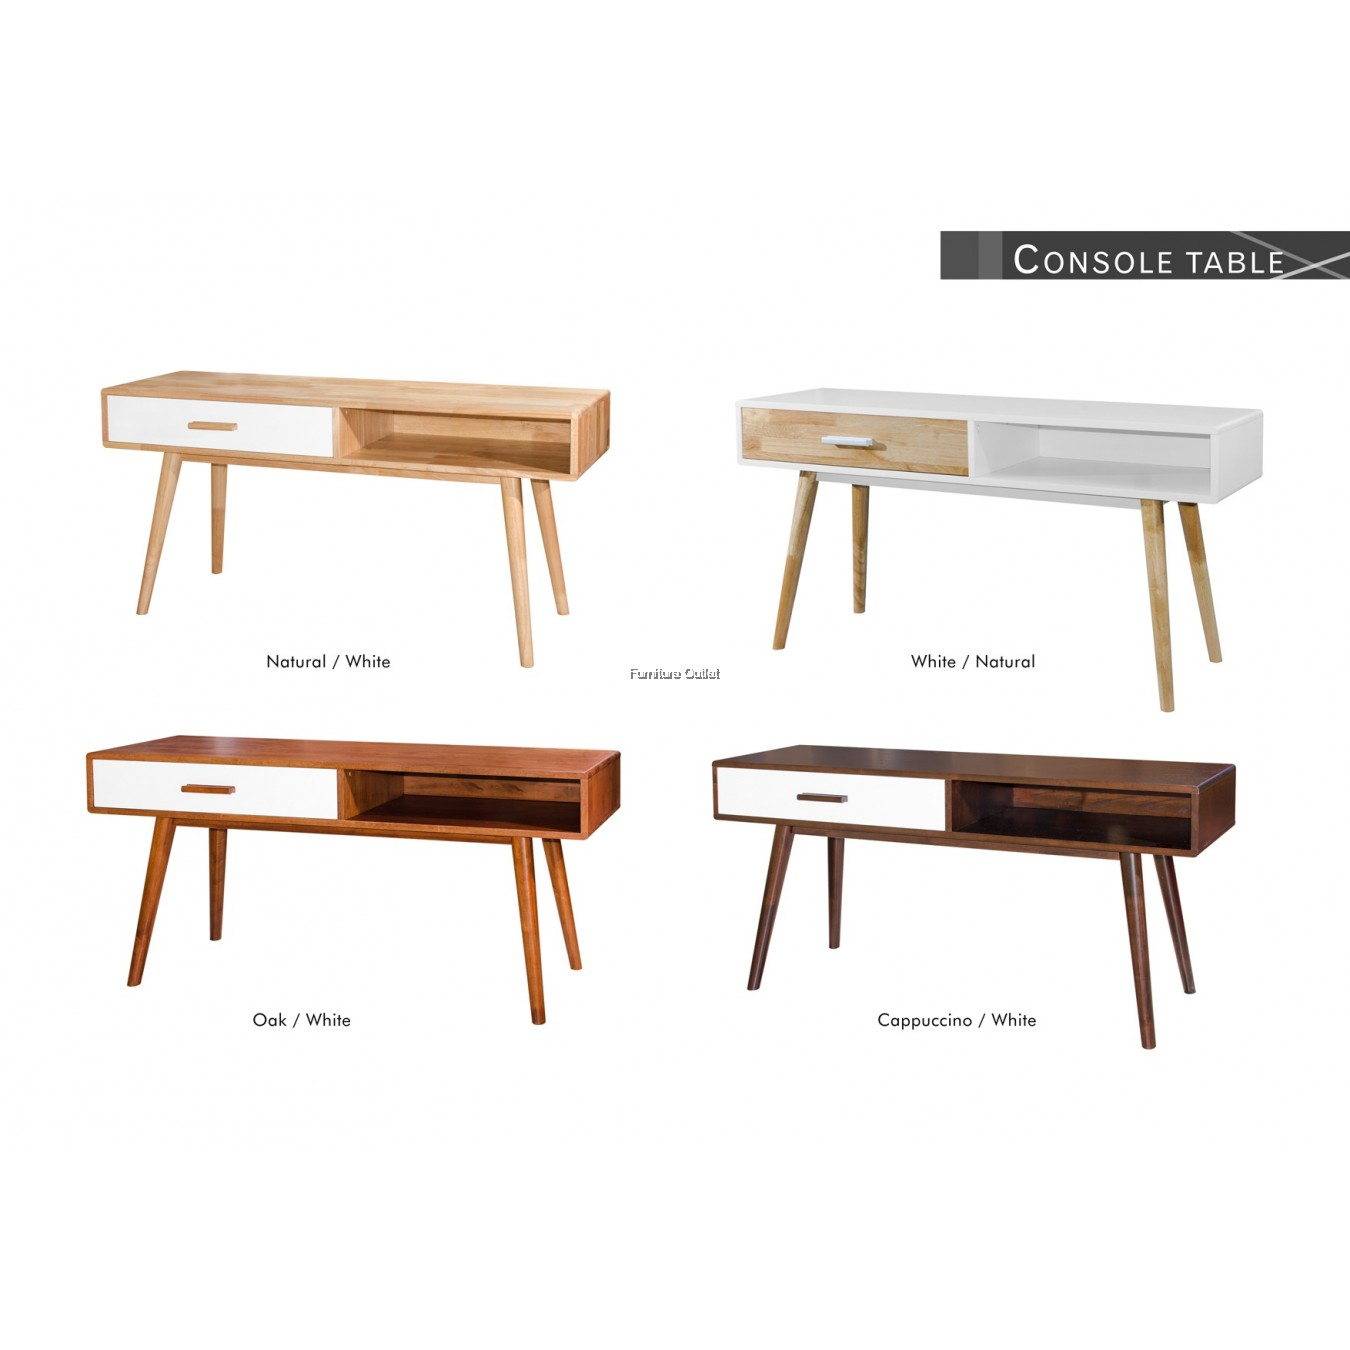 HOLLYWOOD CONSOLE TABLE 4'